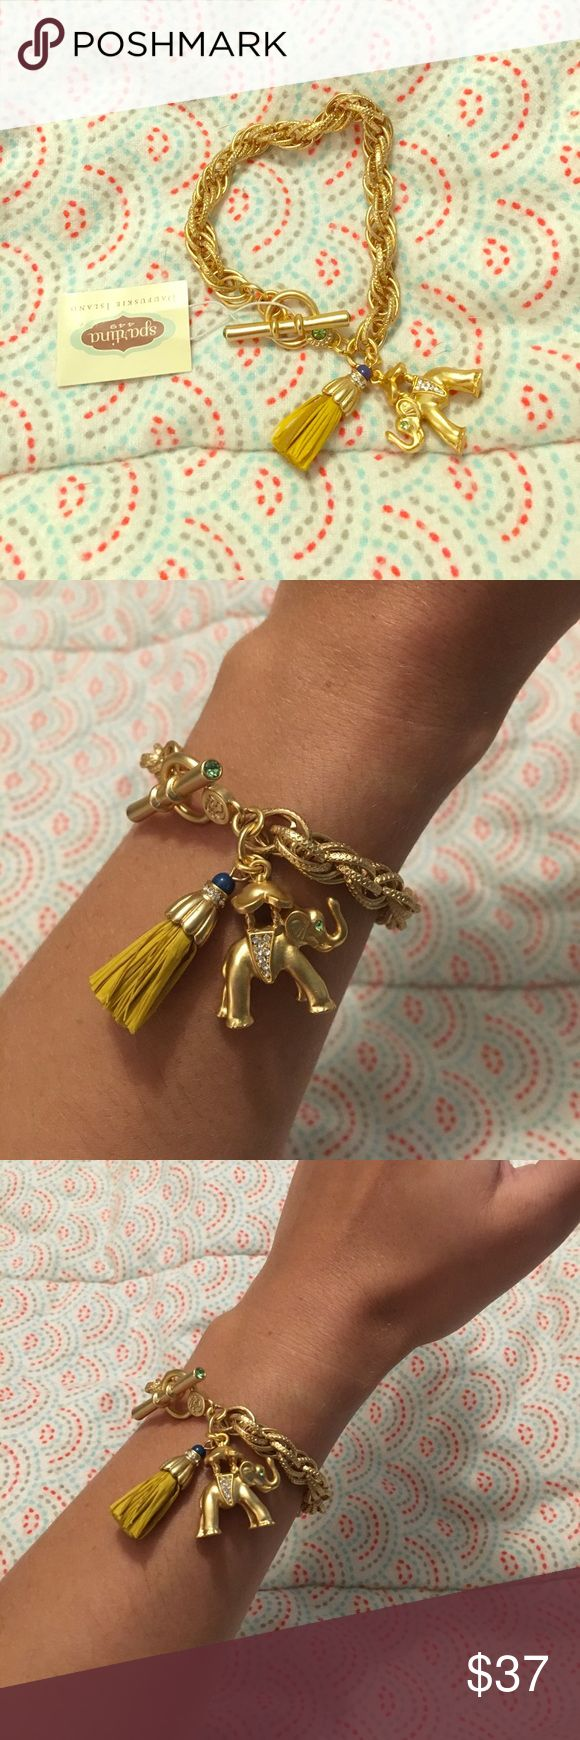 Elephant Toggle Bracelet Spartina elephant toggle bracelet, gold plated, brand new with tags. Great for any occasion Spartina 449 Jewelry Bracelets